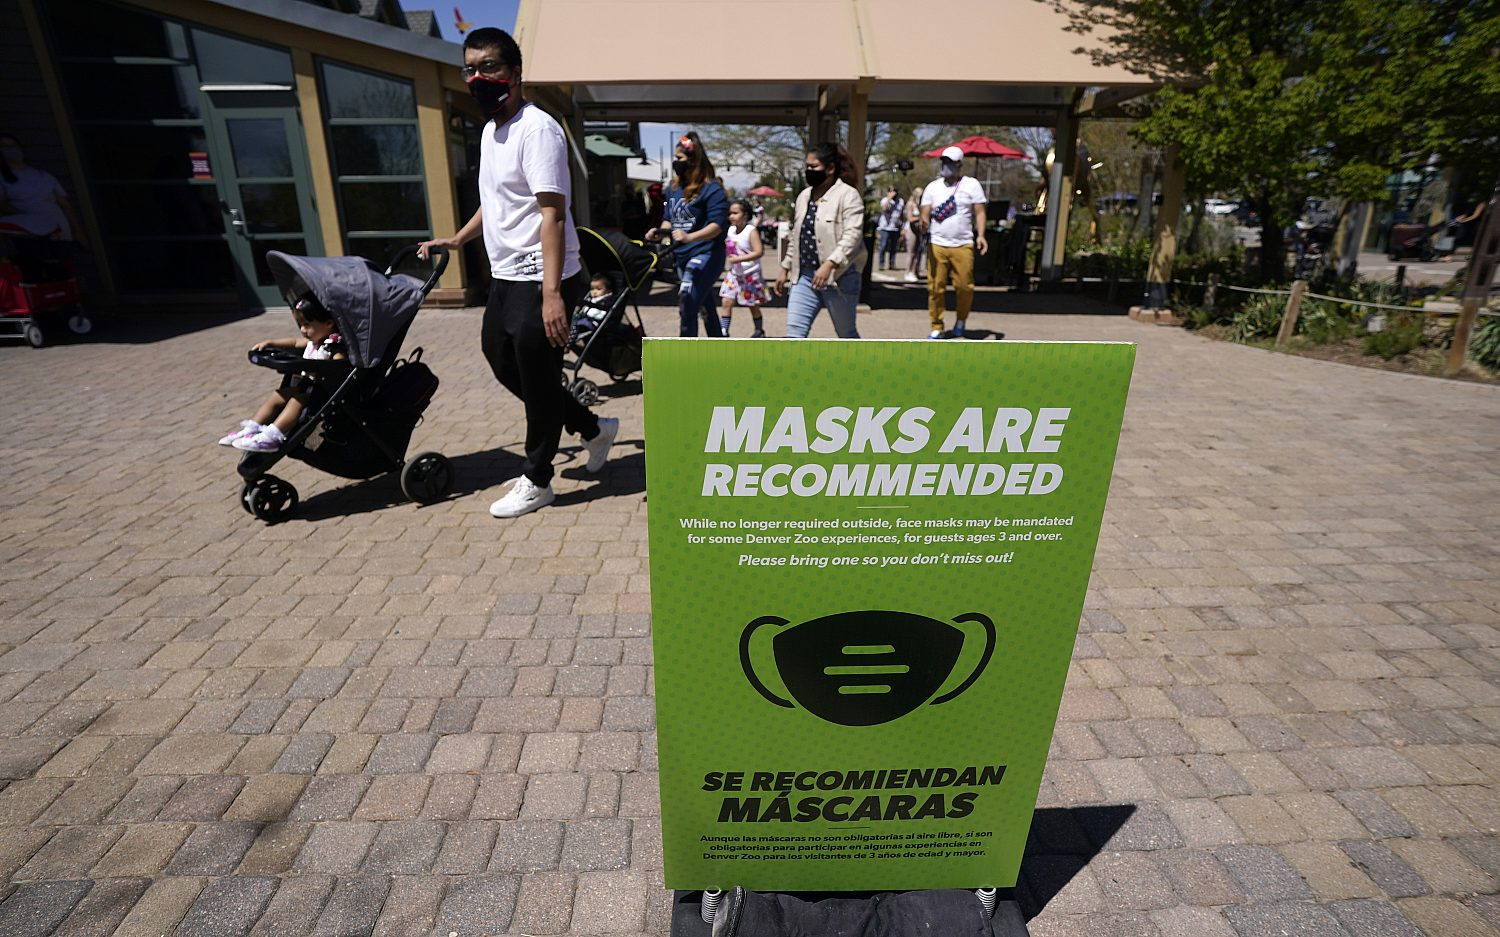 States reorient to new mask guidance